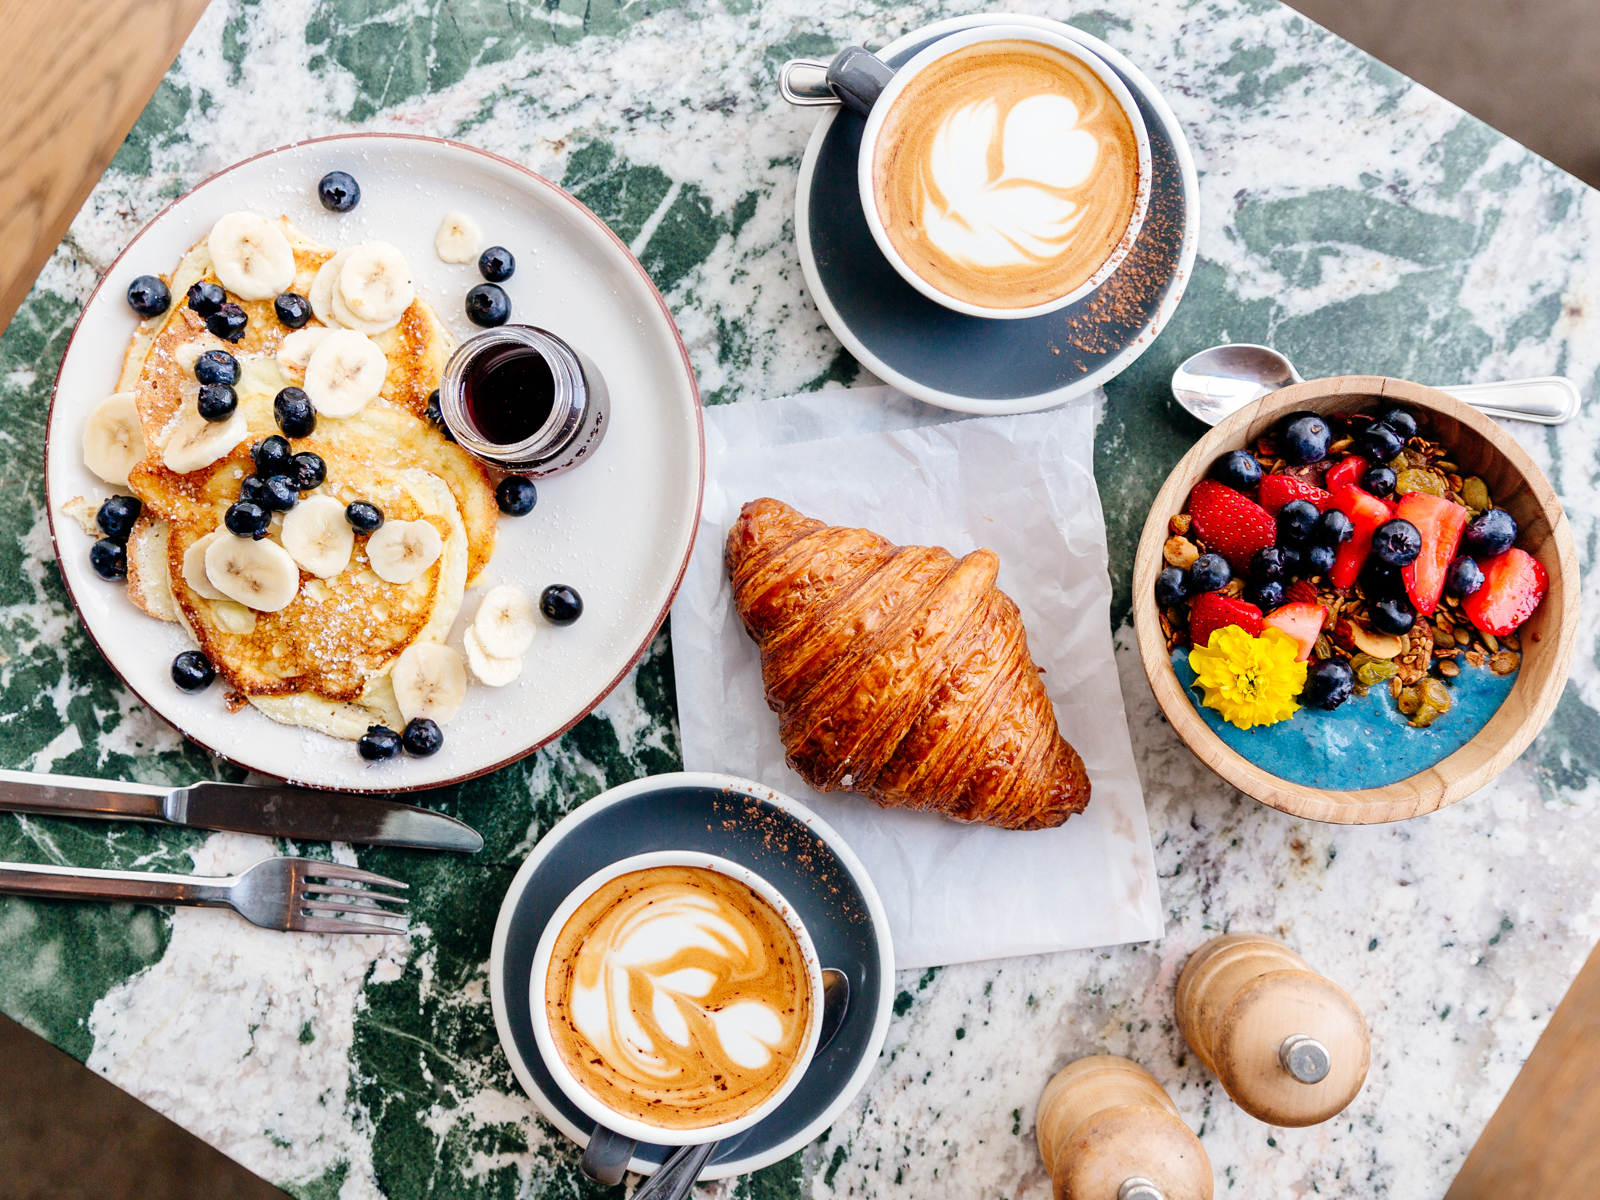 Best Coffee Shops in America